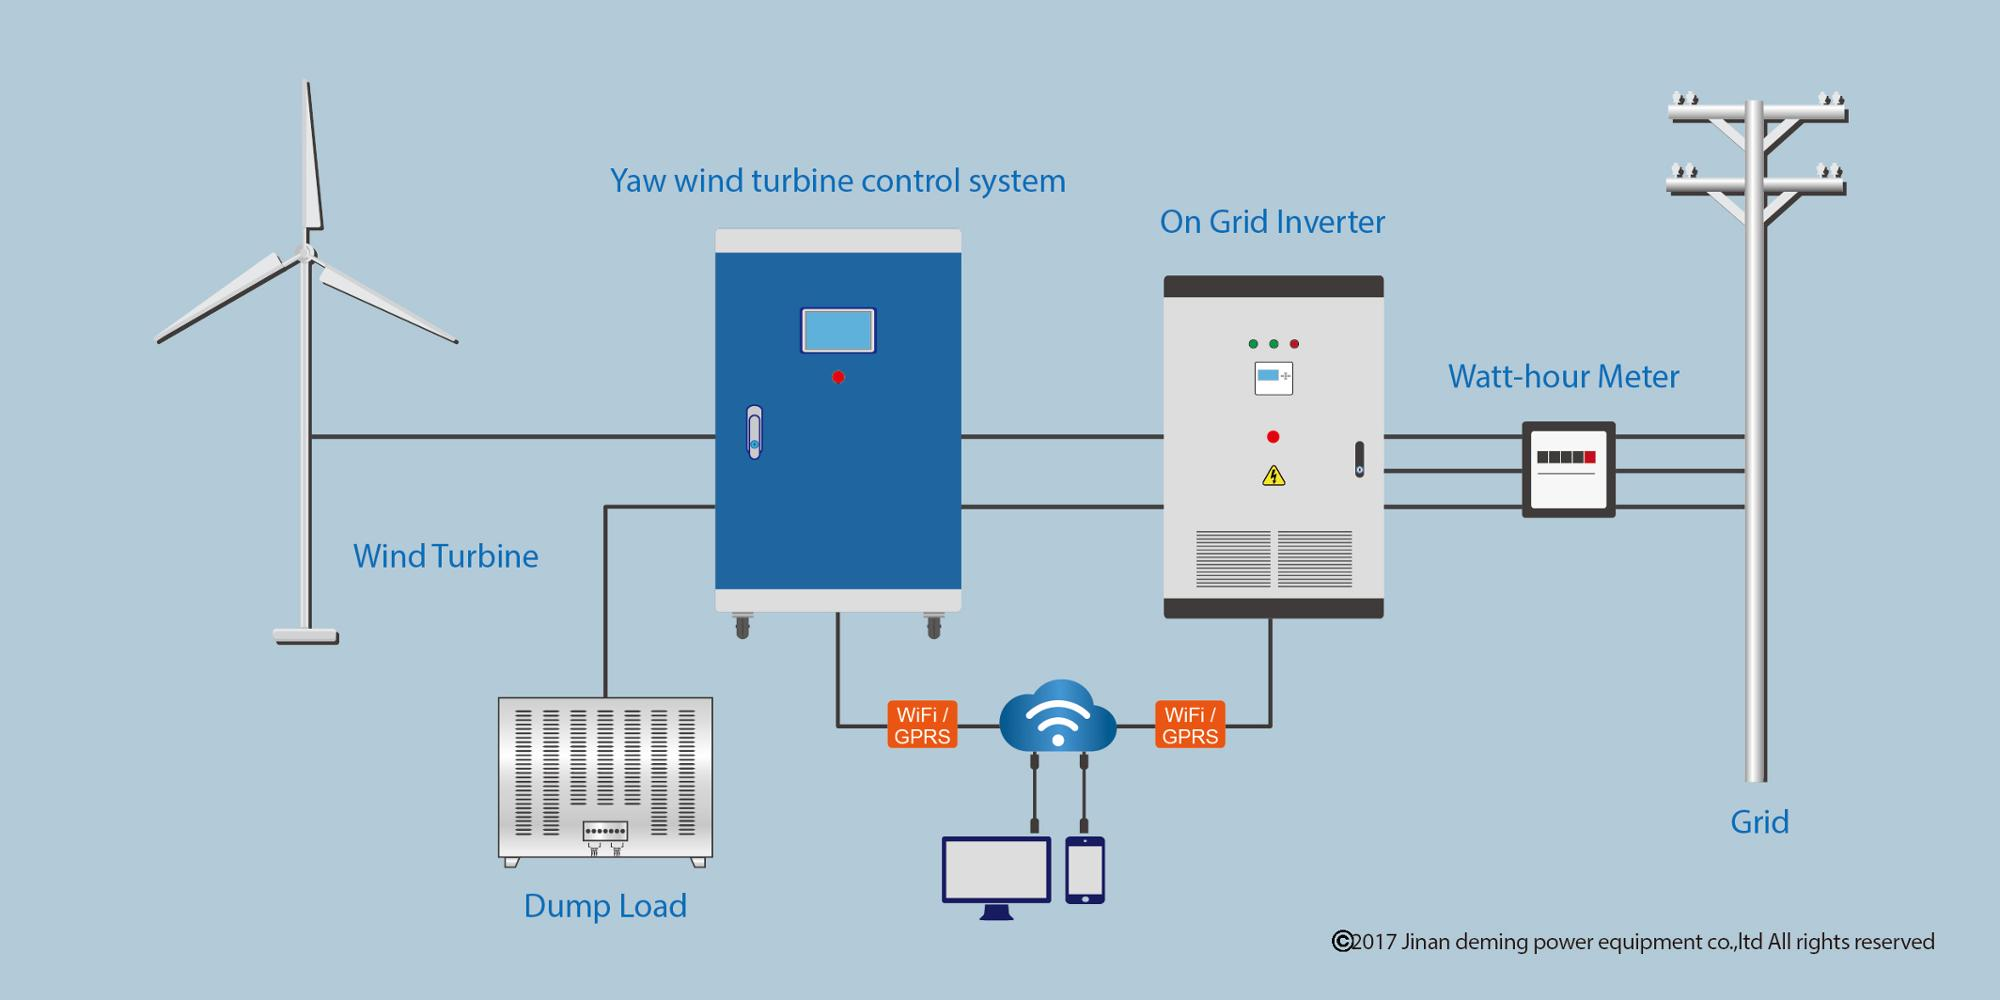 50KW Yaw Wind Turbine Controller for 50KW On Grid System